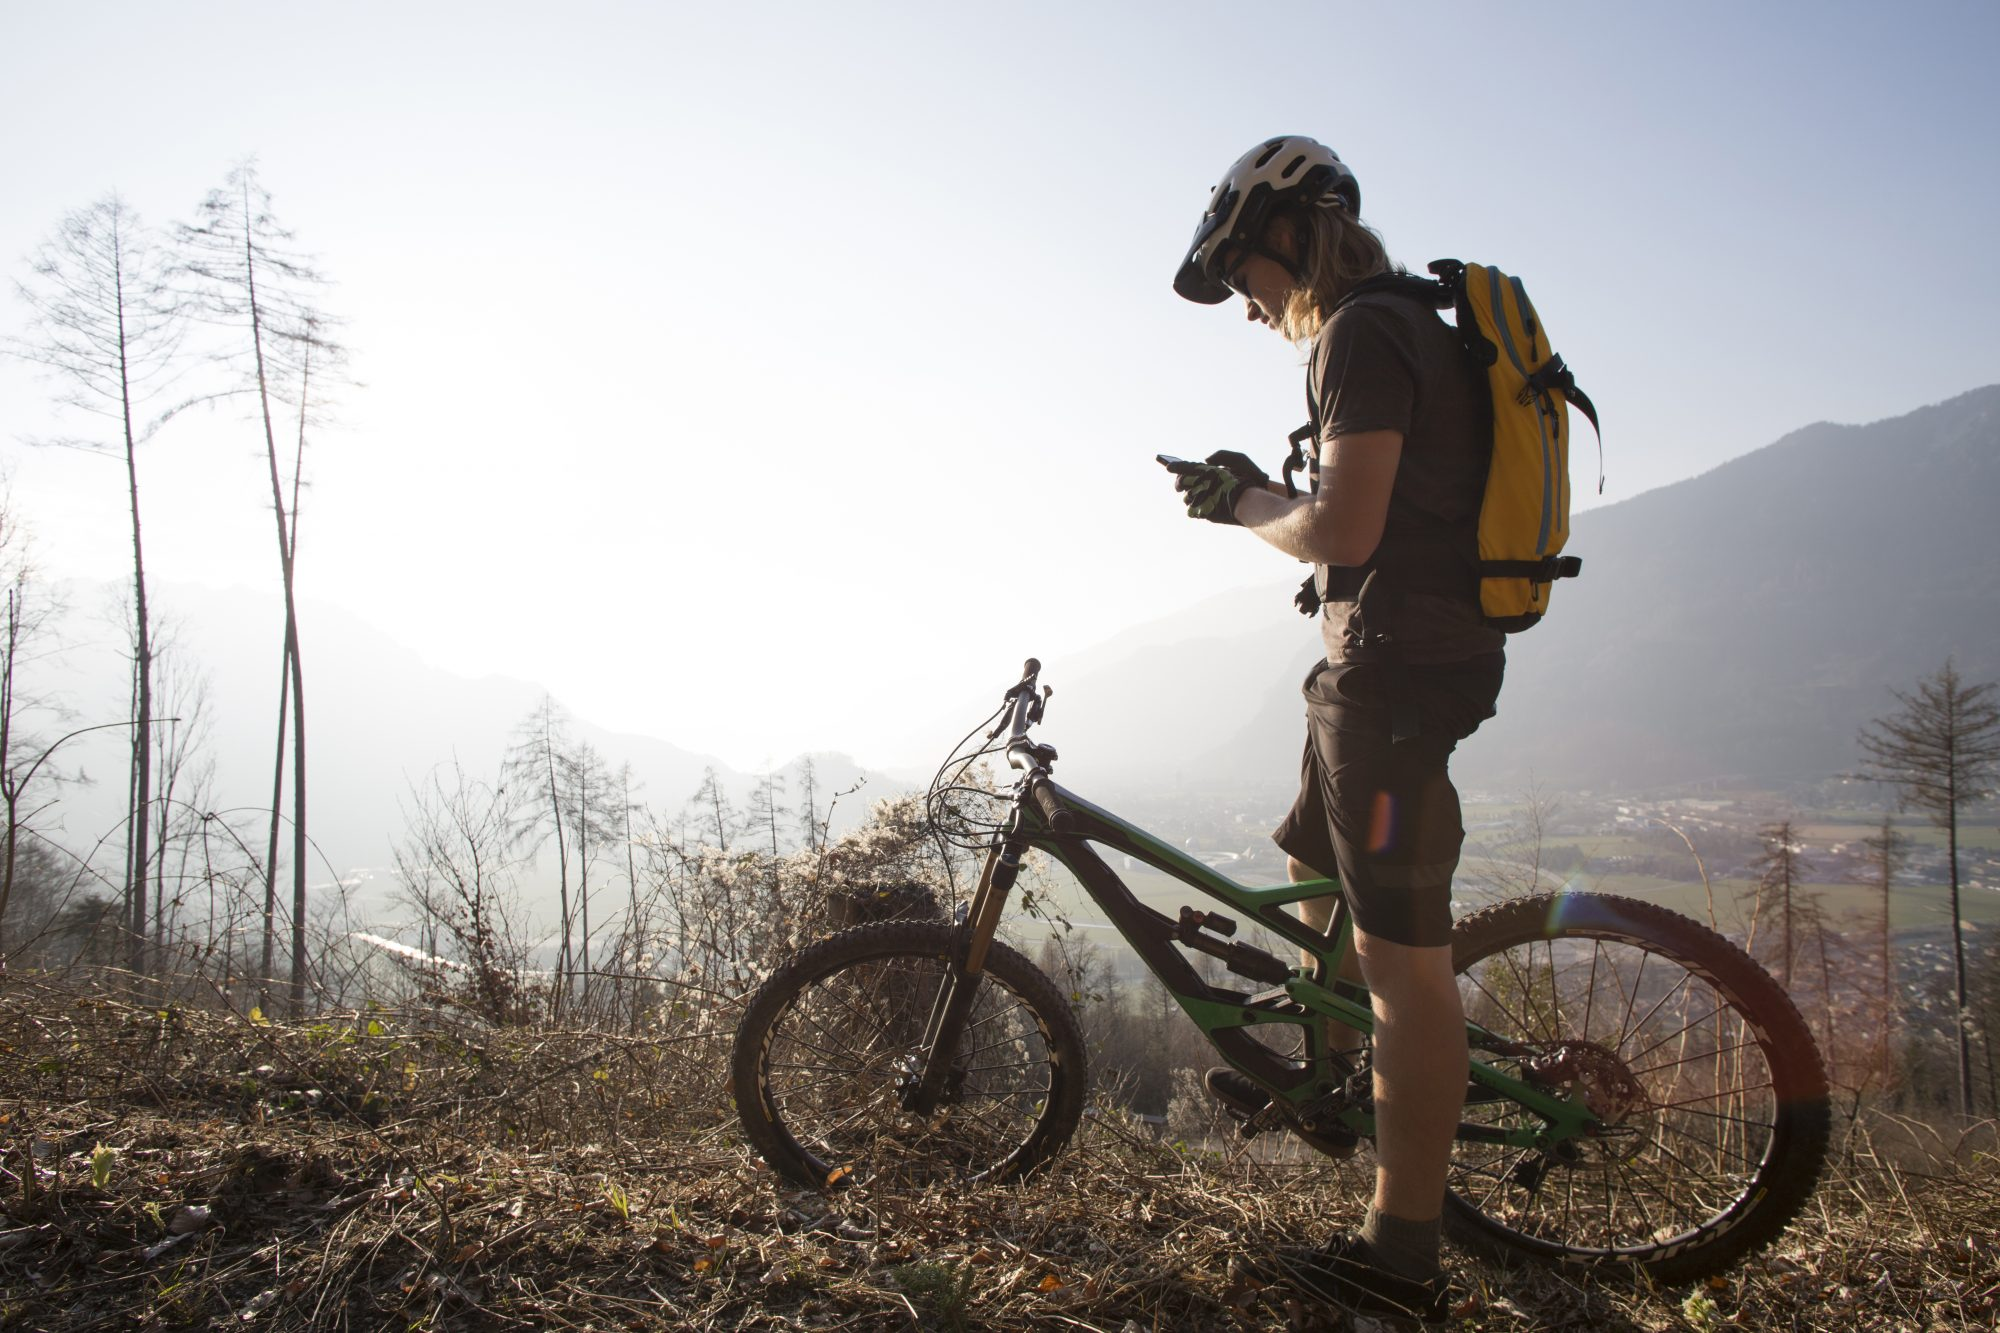 How to stay safe when mountain biking